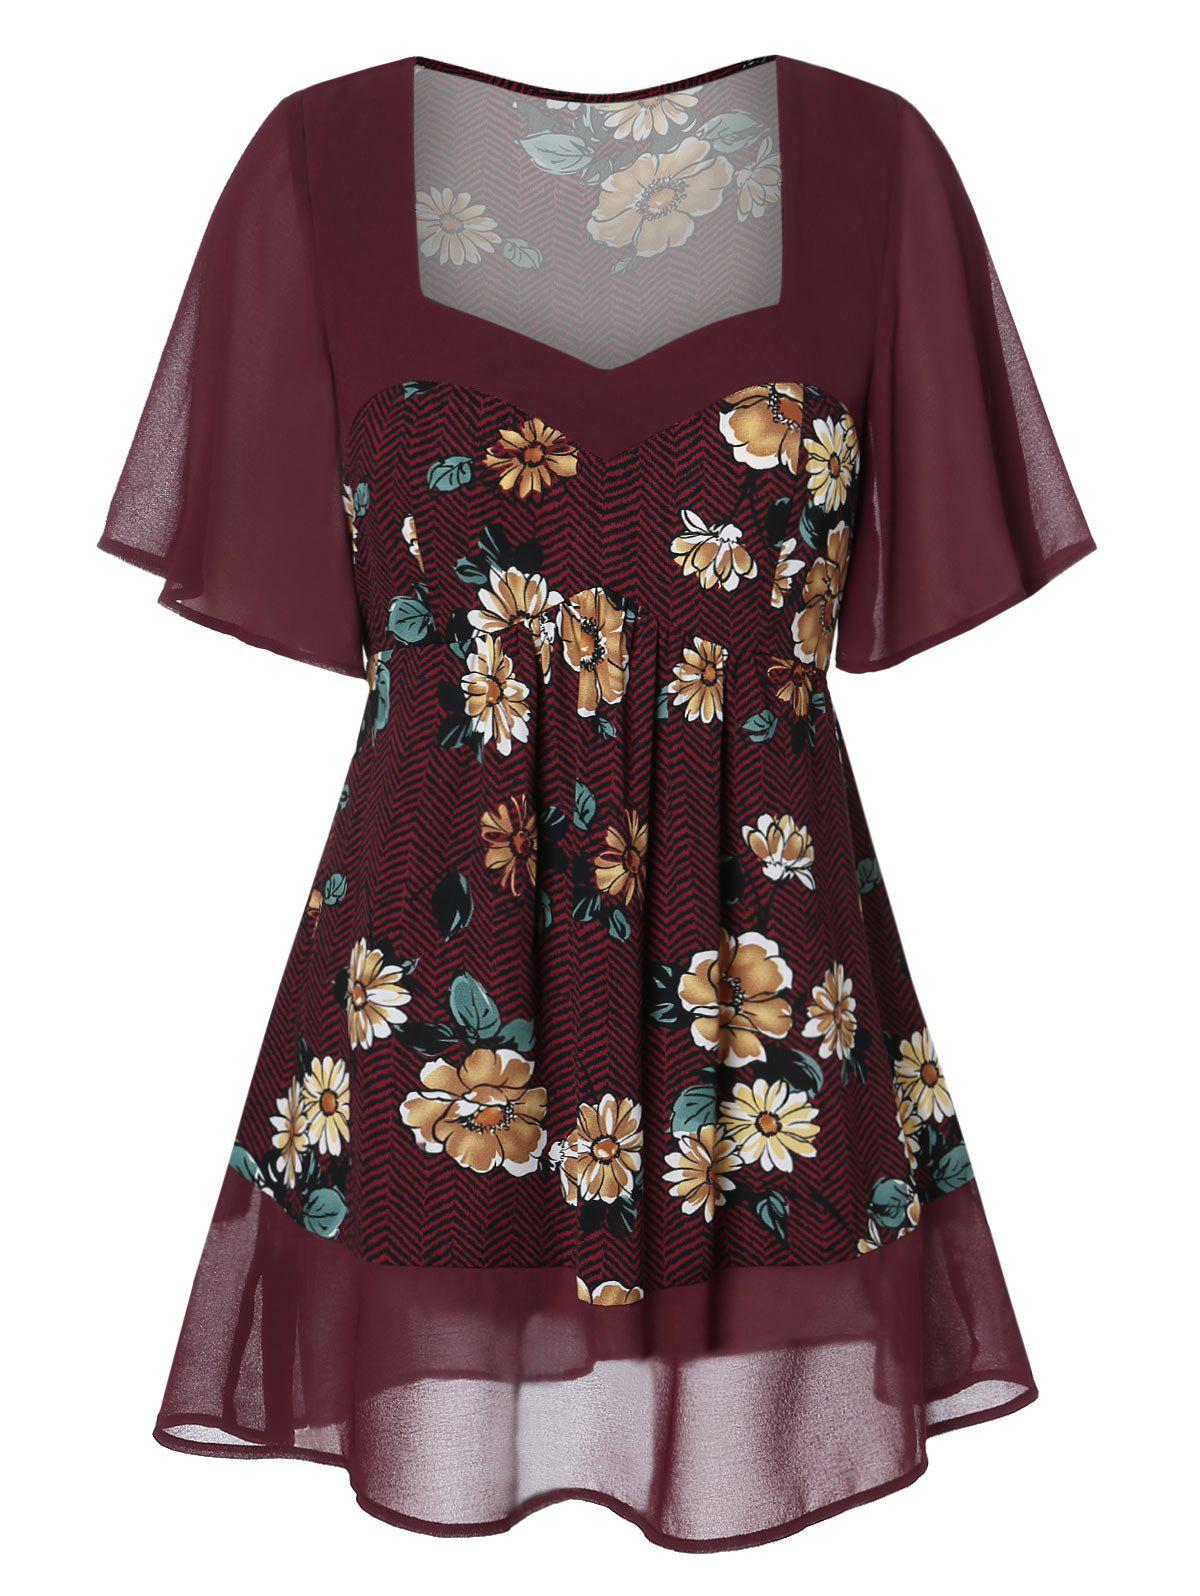 Plus Size Sweetheart Neck Floral Blouse - RED WINE 2X